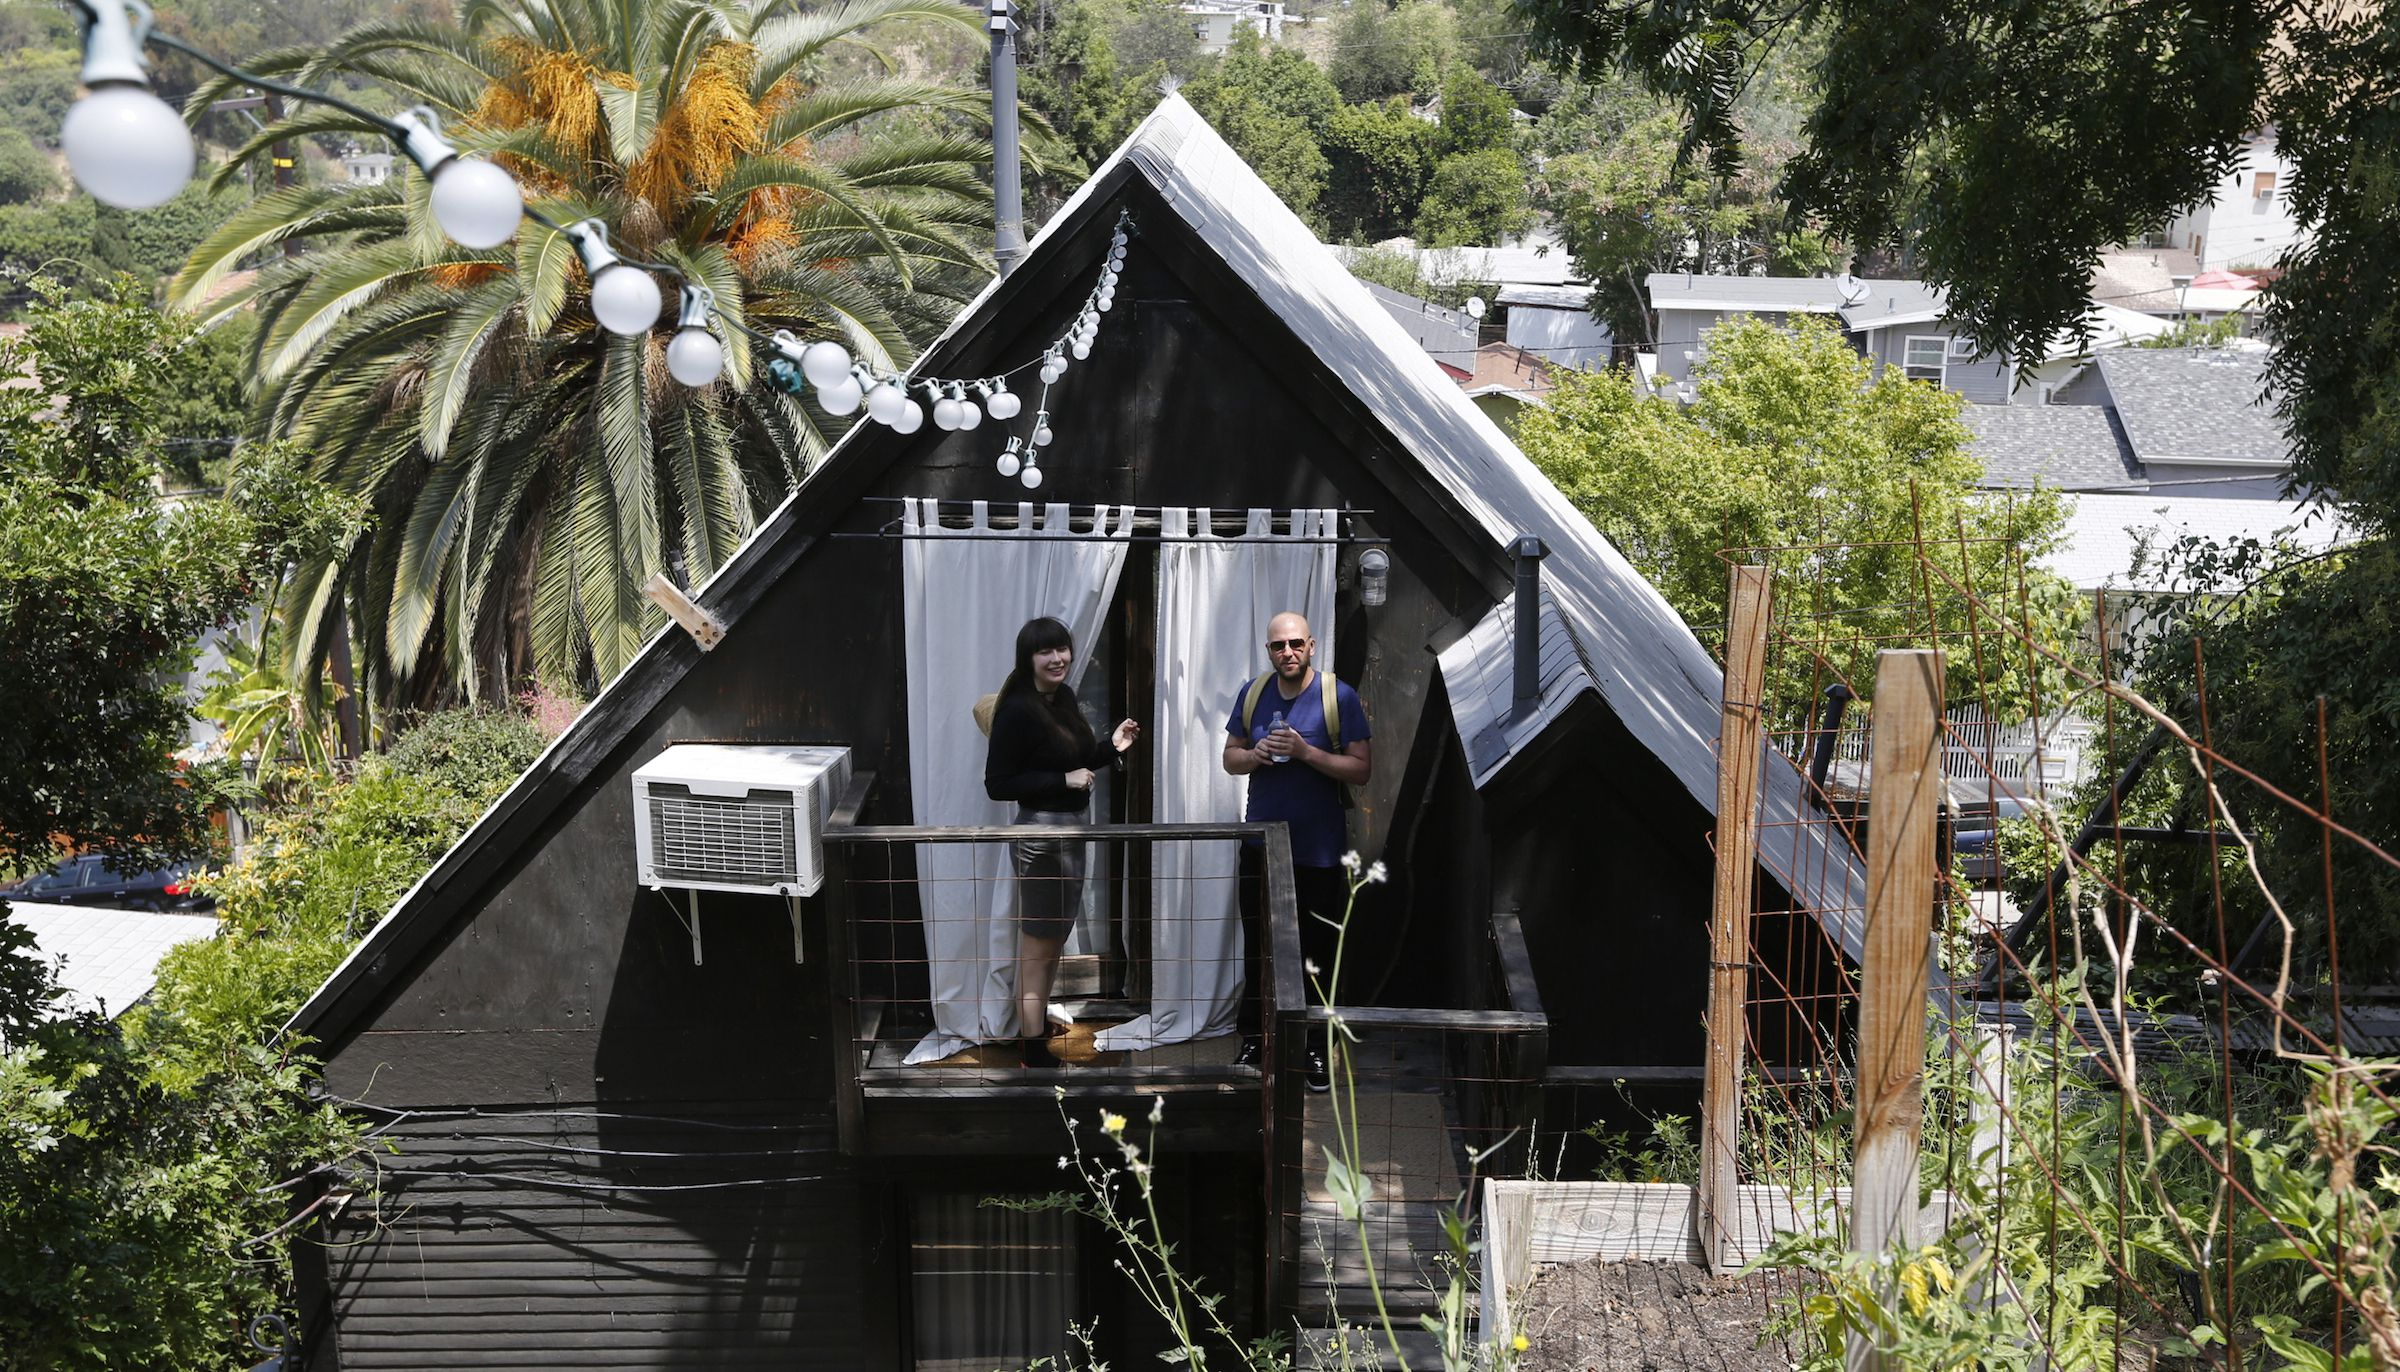 In this Monday, May 19, 2014 photo, Airbnb guests Camille Smithwick and James Green from Manchester, U.K., pose for photos at an Airbnb property owned by ceramist Jonathan Entler in the Echo Park area of Los Angeles. Deeper savings can be had through sites such as Airbnb that arrange for people to rent out rooms, apartments or even couches. The number of listed accommodations has soared since Airbnb's founding in 2008 to 550,000 _ not far below Hilton's 685,000 rooms worldwide. (AP Photo/Damian Dovarganes)